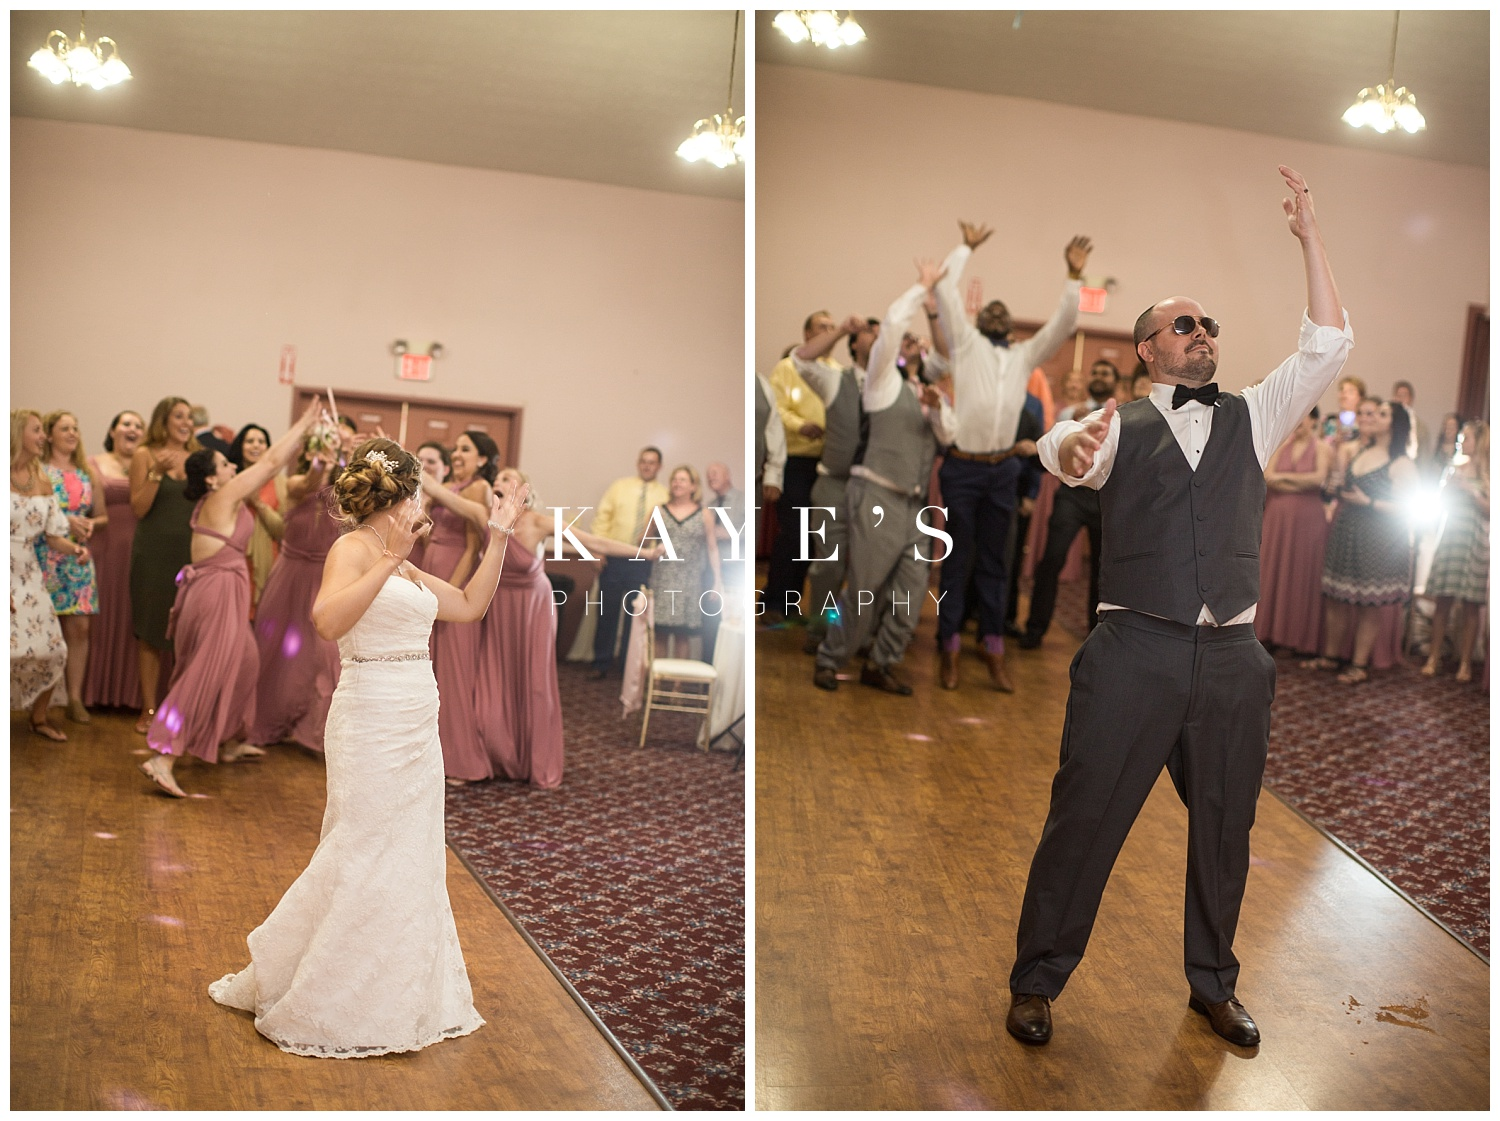 Bride tossing bouquet and groom tossing garter at wedding reception at crossroads village!!